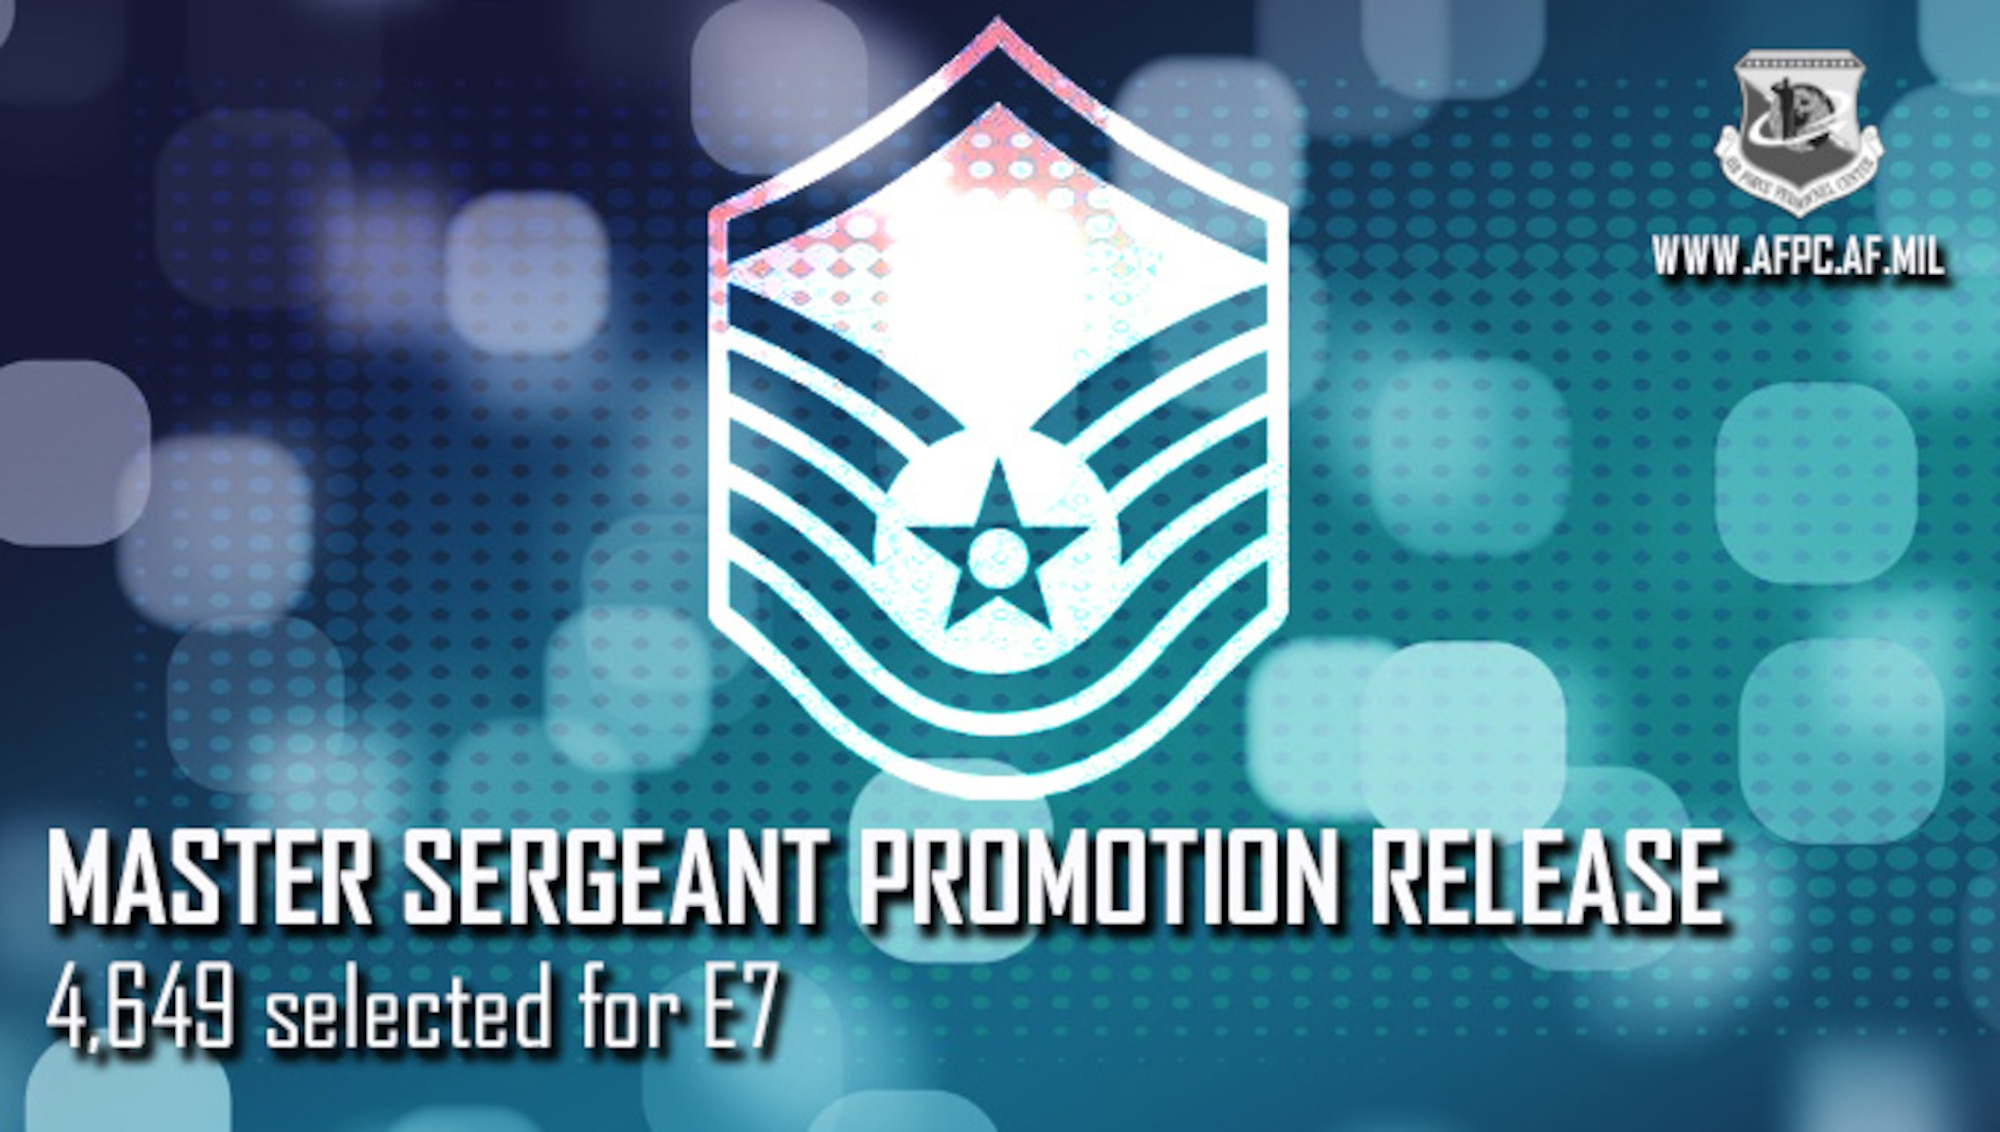 Blue graphic with master sergeant stripes